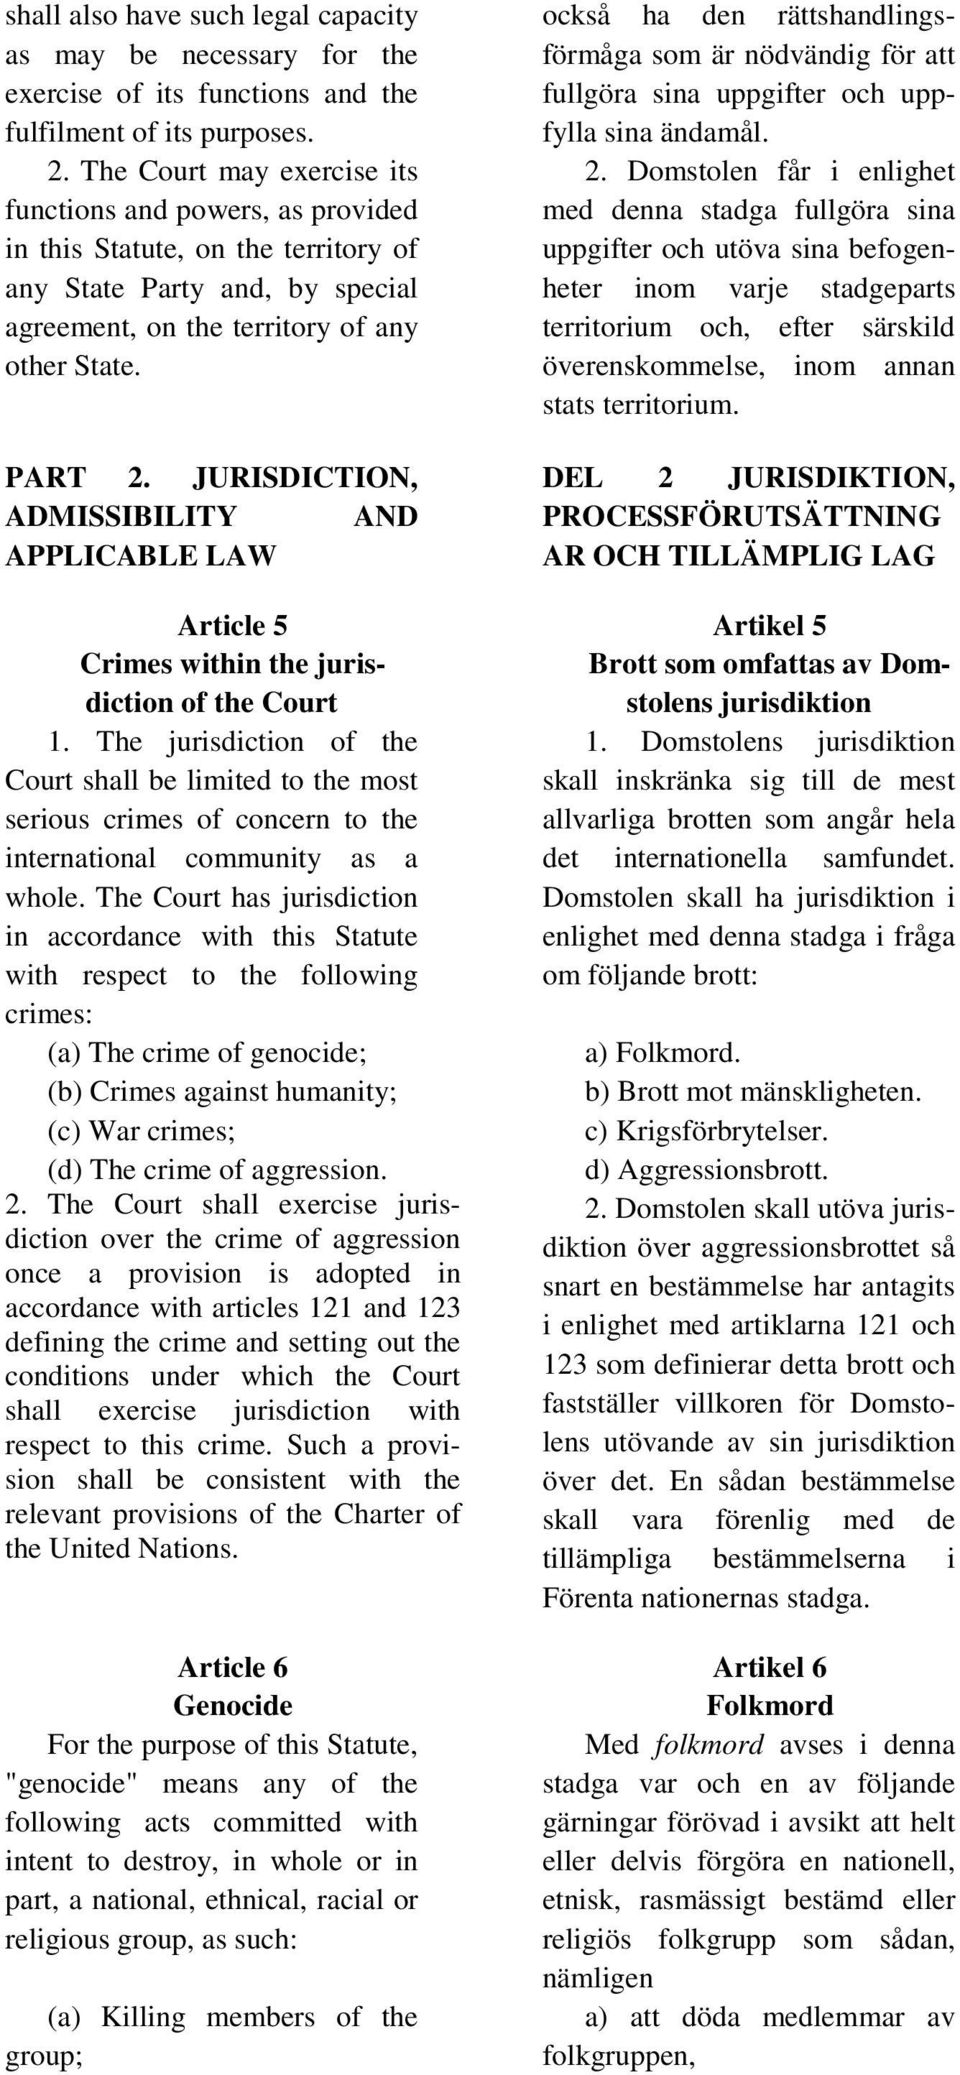 JURISDICTION, ADMISSIBILITY AND APPLICABLE LAW Article 5 Crimes within the jurisdiction of the Court 1.